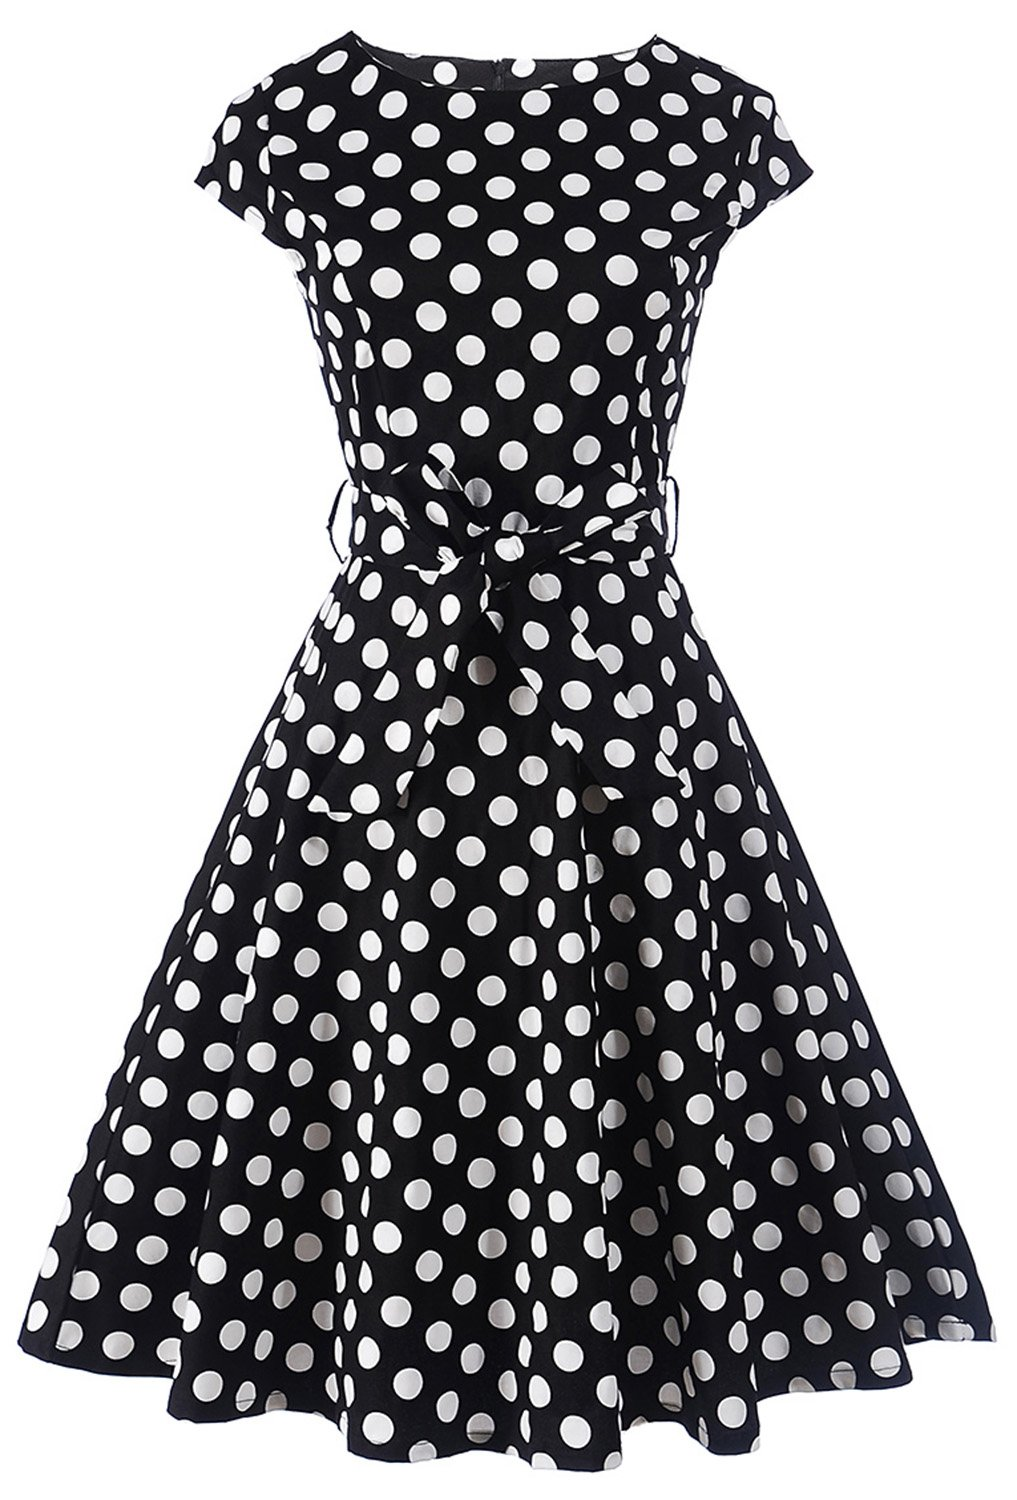 ANCHOVY Cap Sleeve Polka Dots Tea Cocktail Party Vintage 1950s Dresses for Women C71 (Black, L)